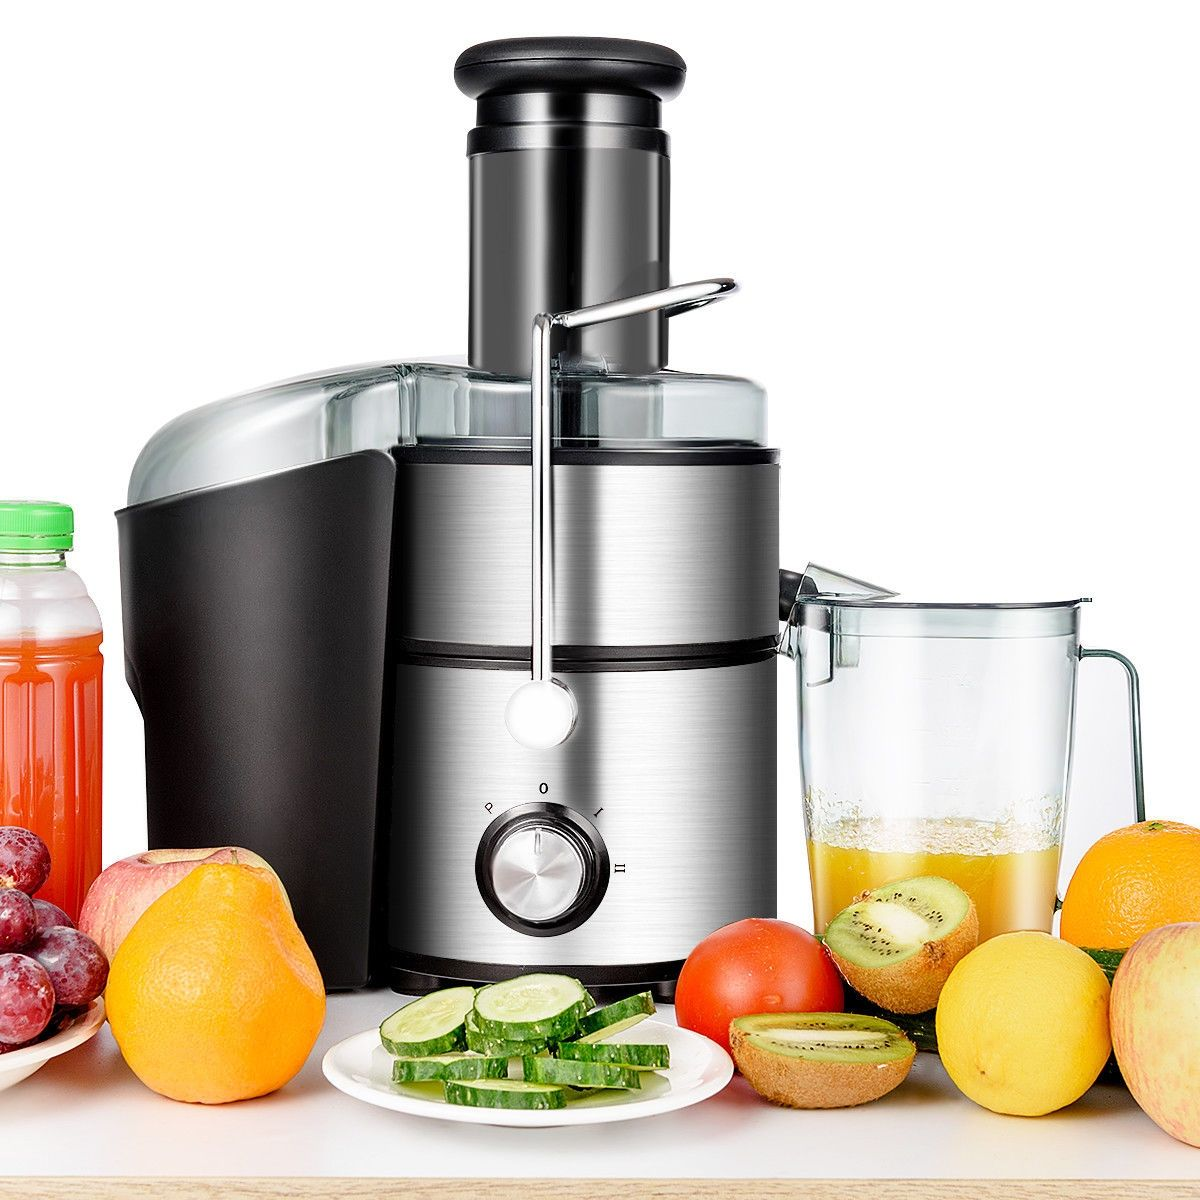 5 in 1 Multifunction Juice Extractor Juicer Blender | Juicer, Centrifugal  juicer, Juicer machine